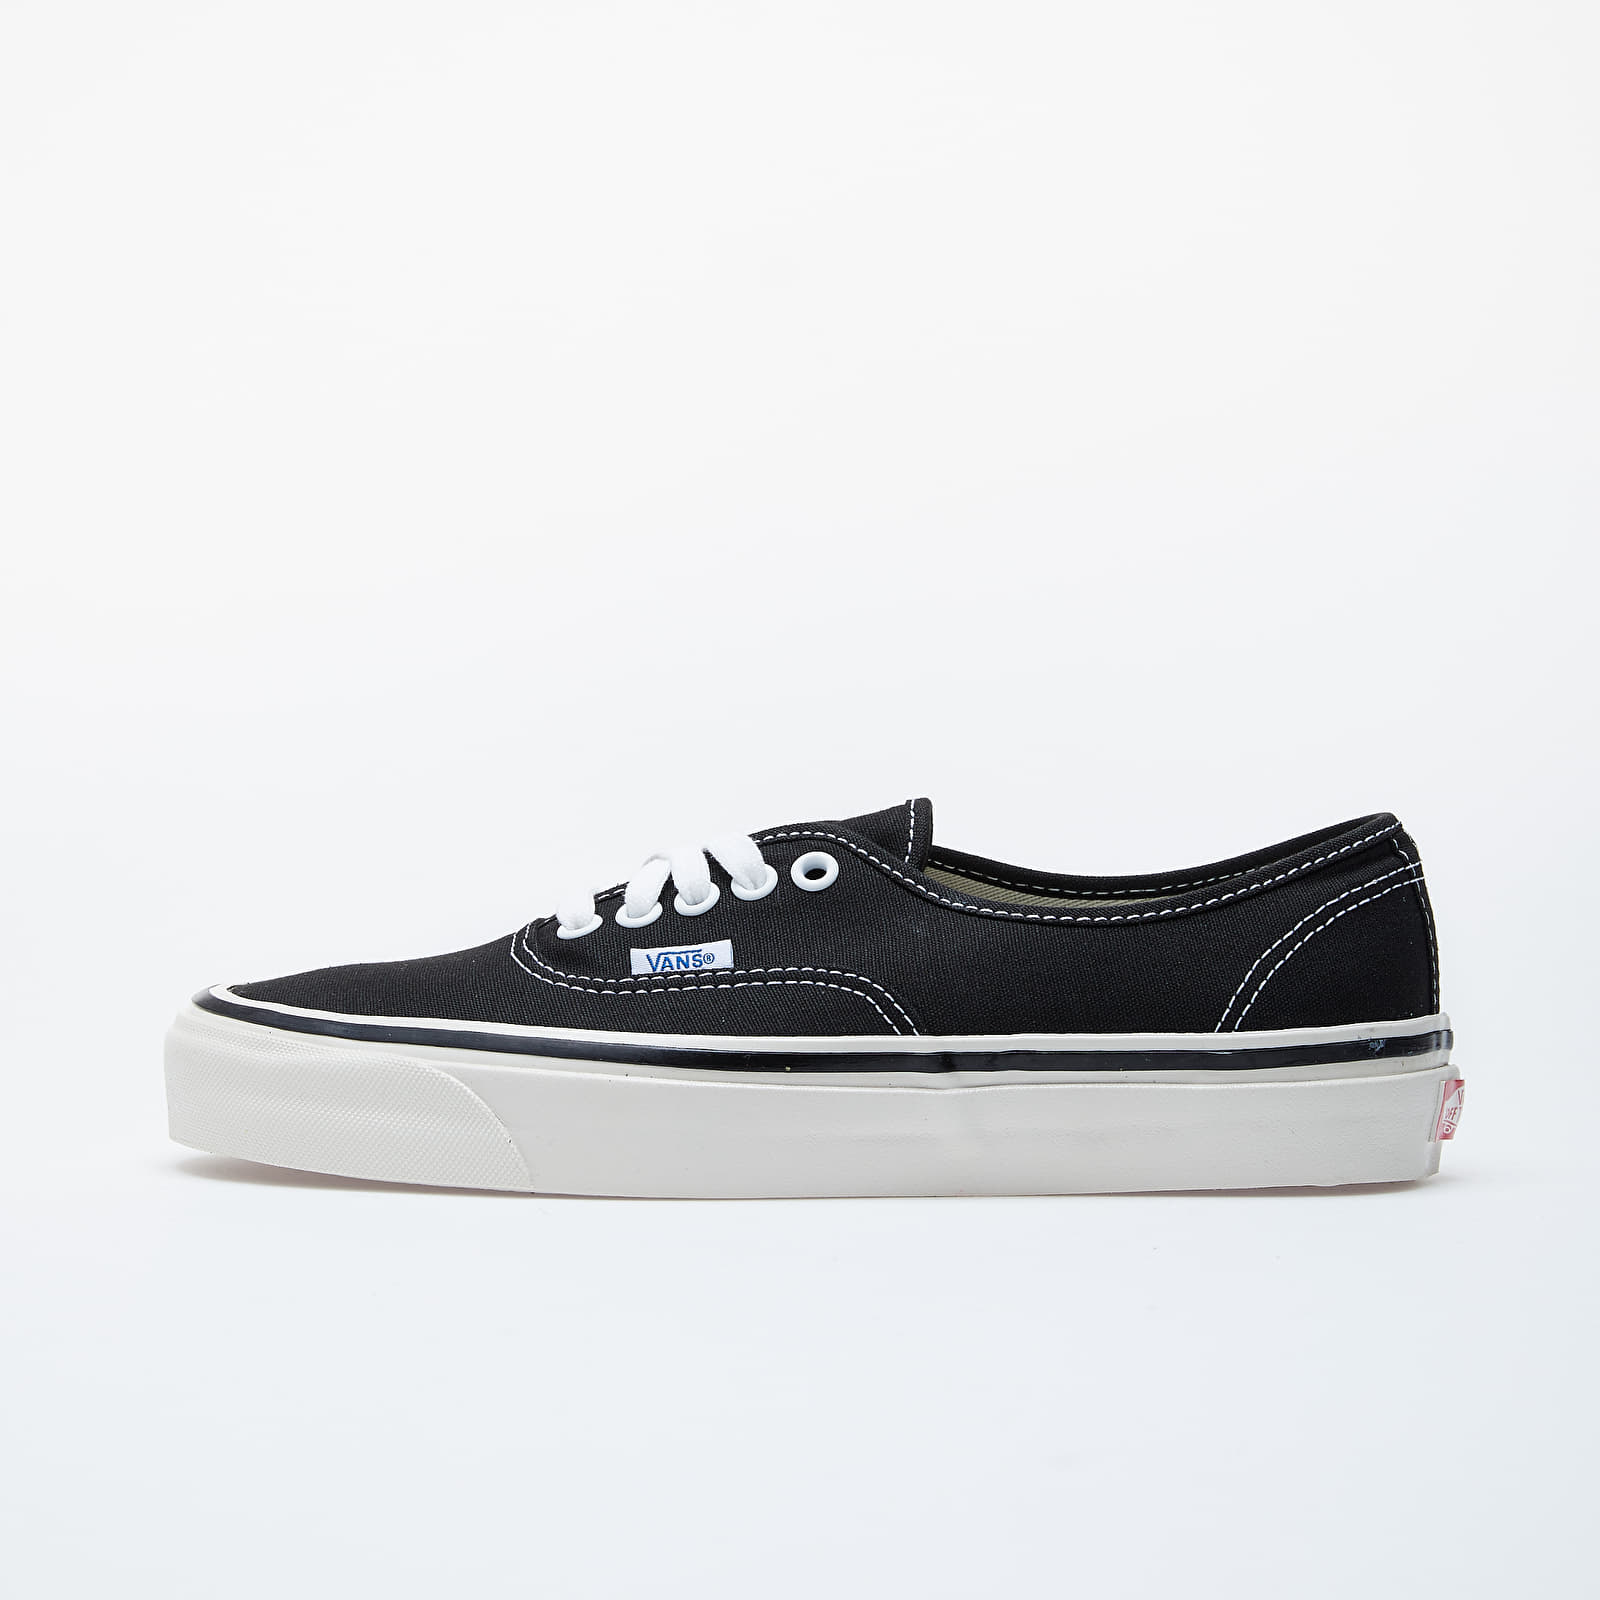 Men's shoes Vans Authentic 44 DX Black